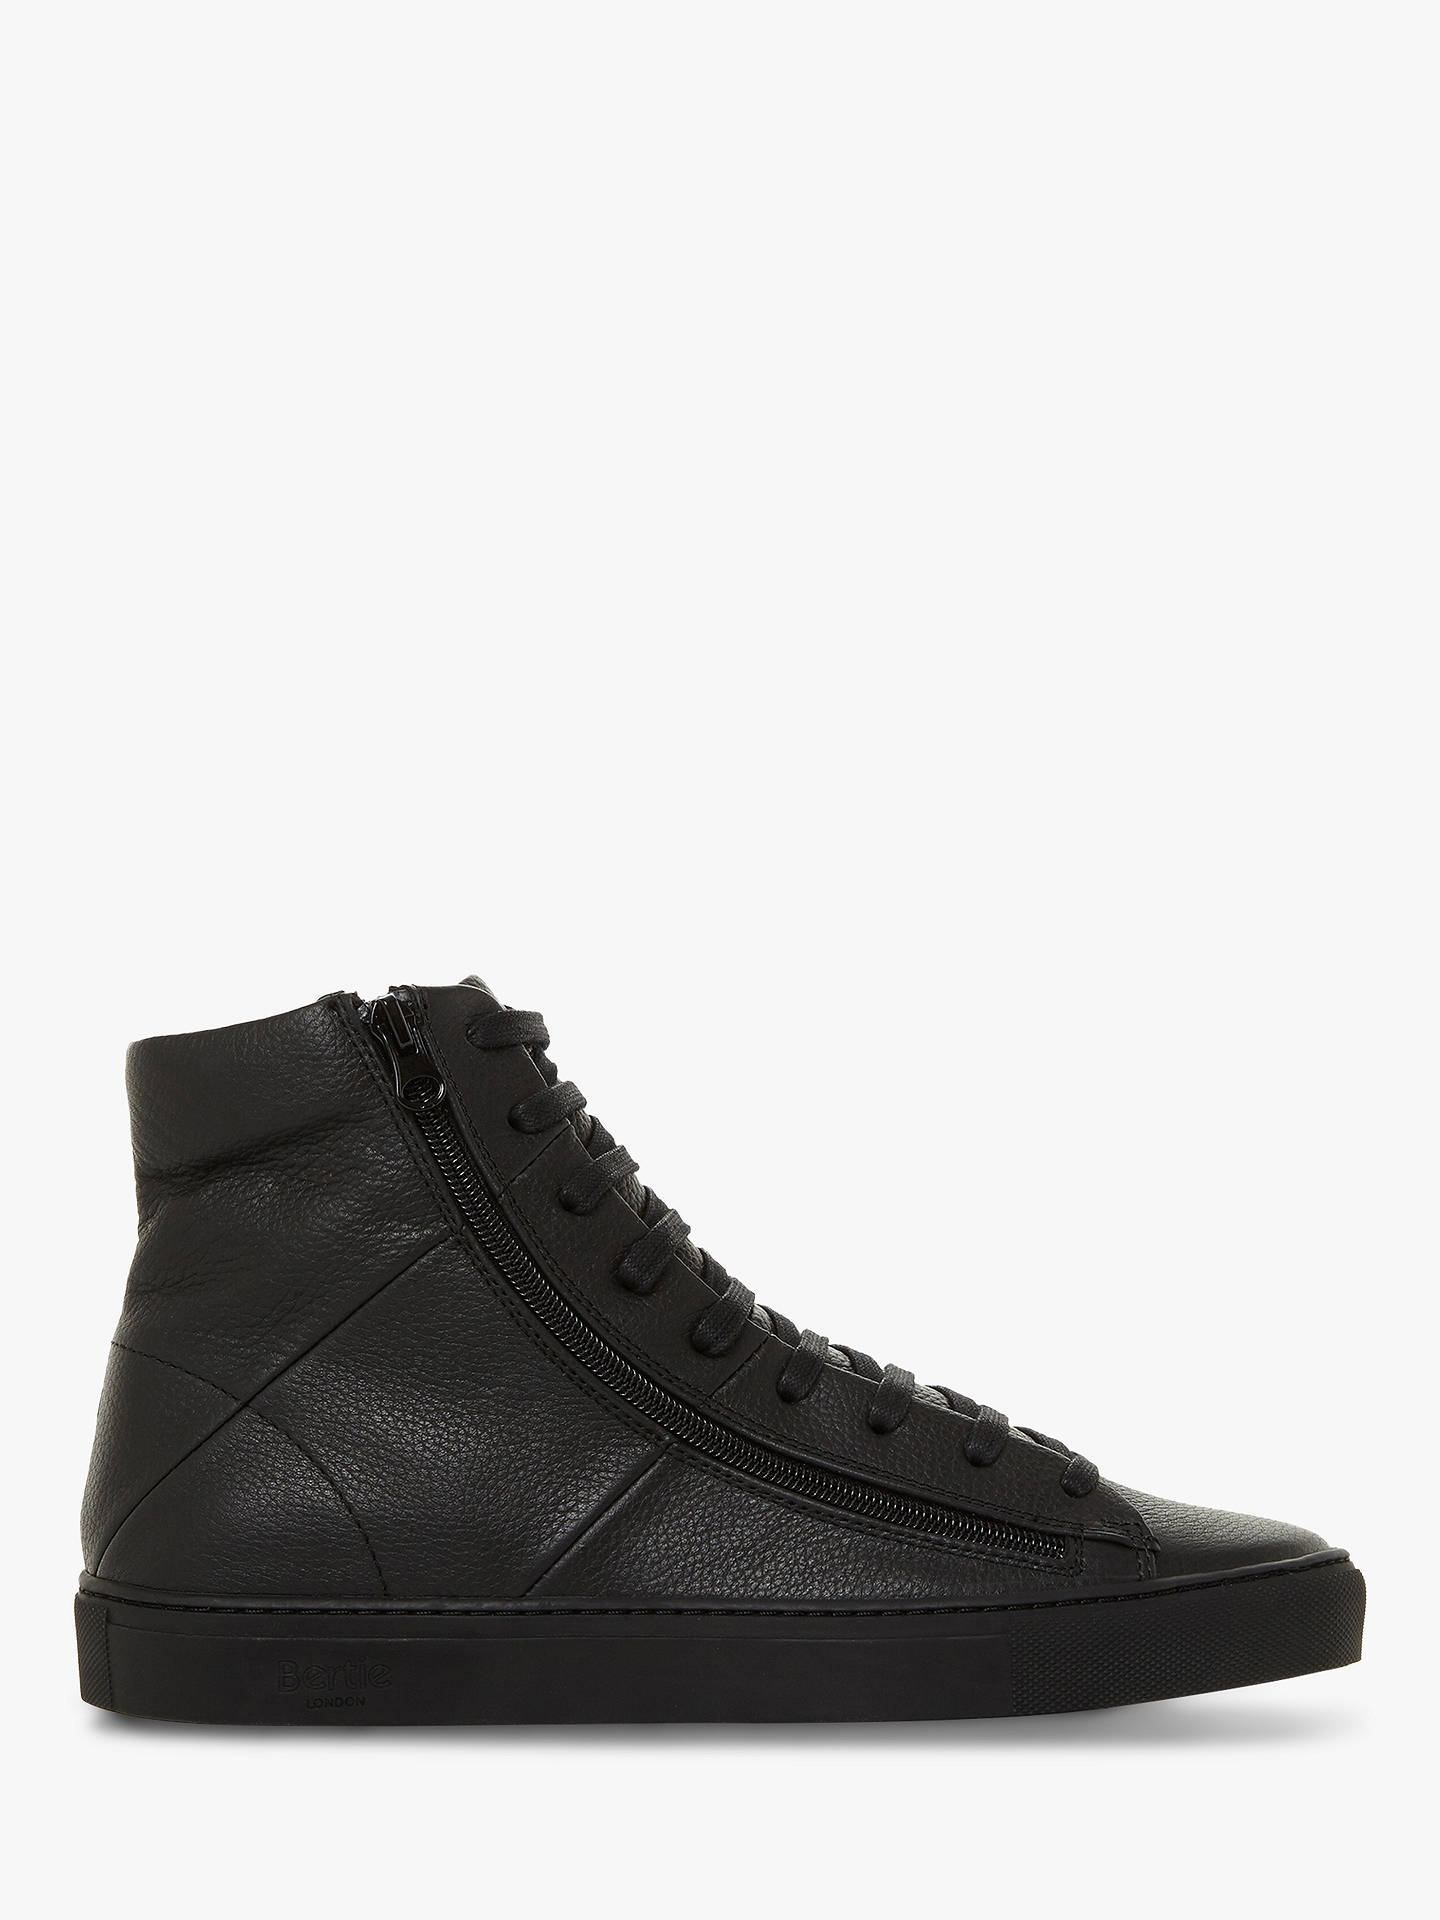 BuyBertie Cable Leather High Top Trainers, Black, 12 Online at johnlewis.com